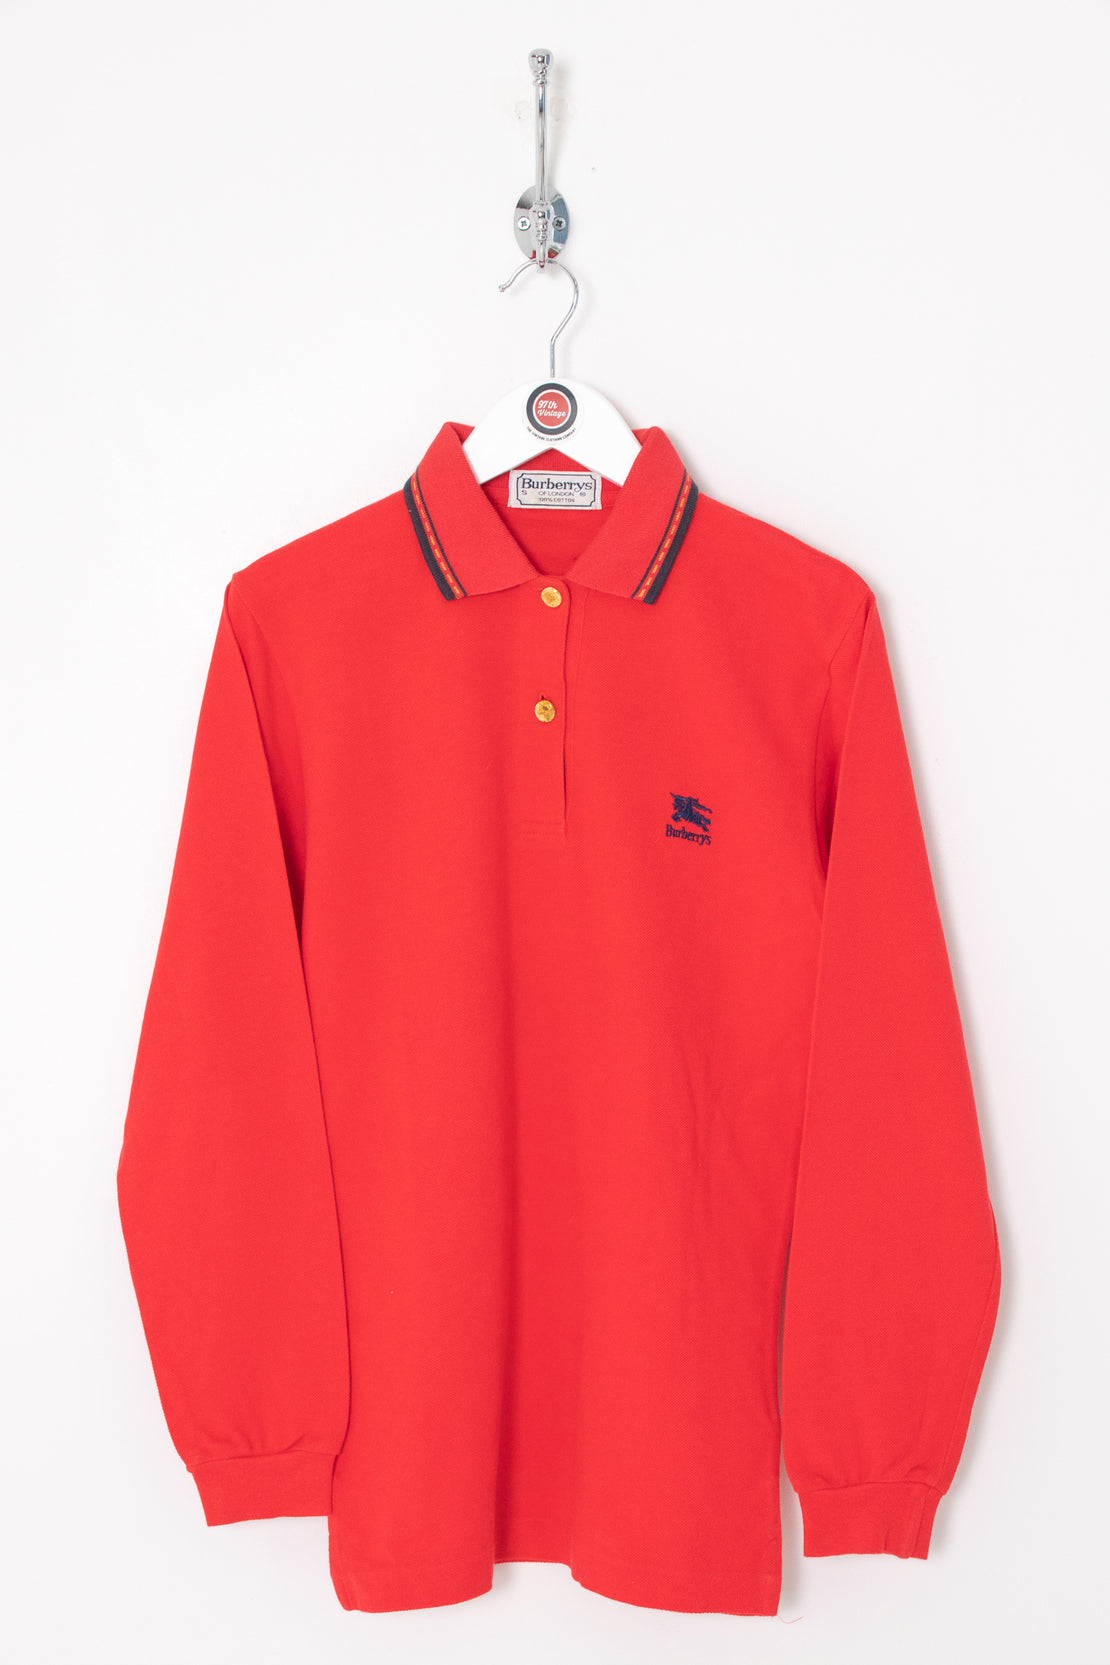 Burberry Longsleeve Polo Shirt (XS)